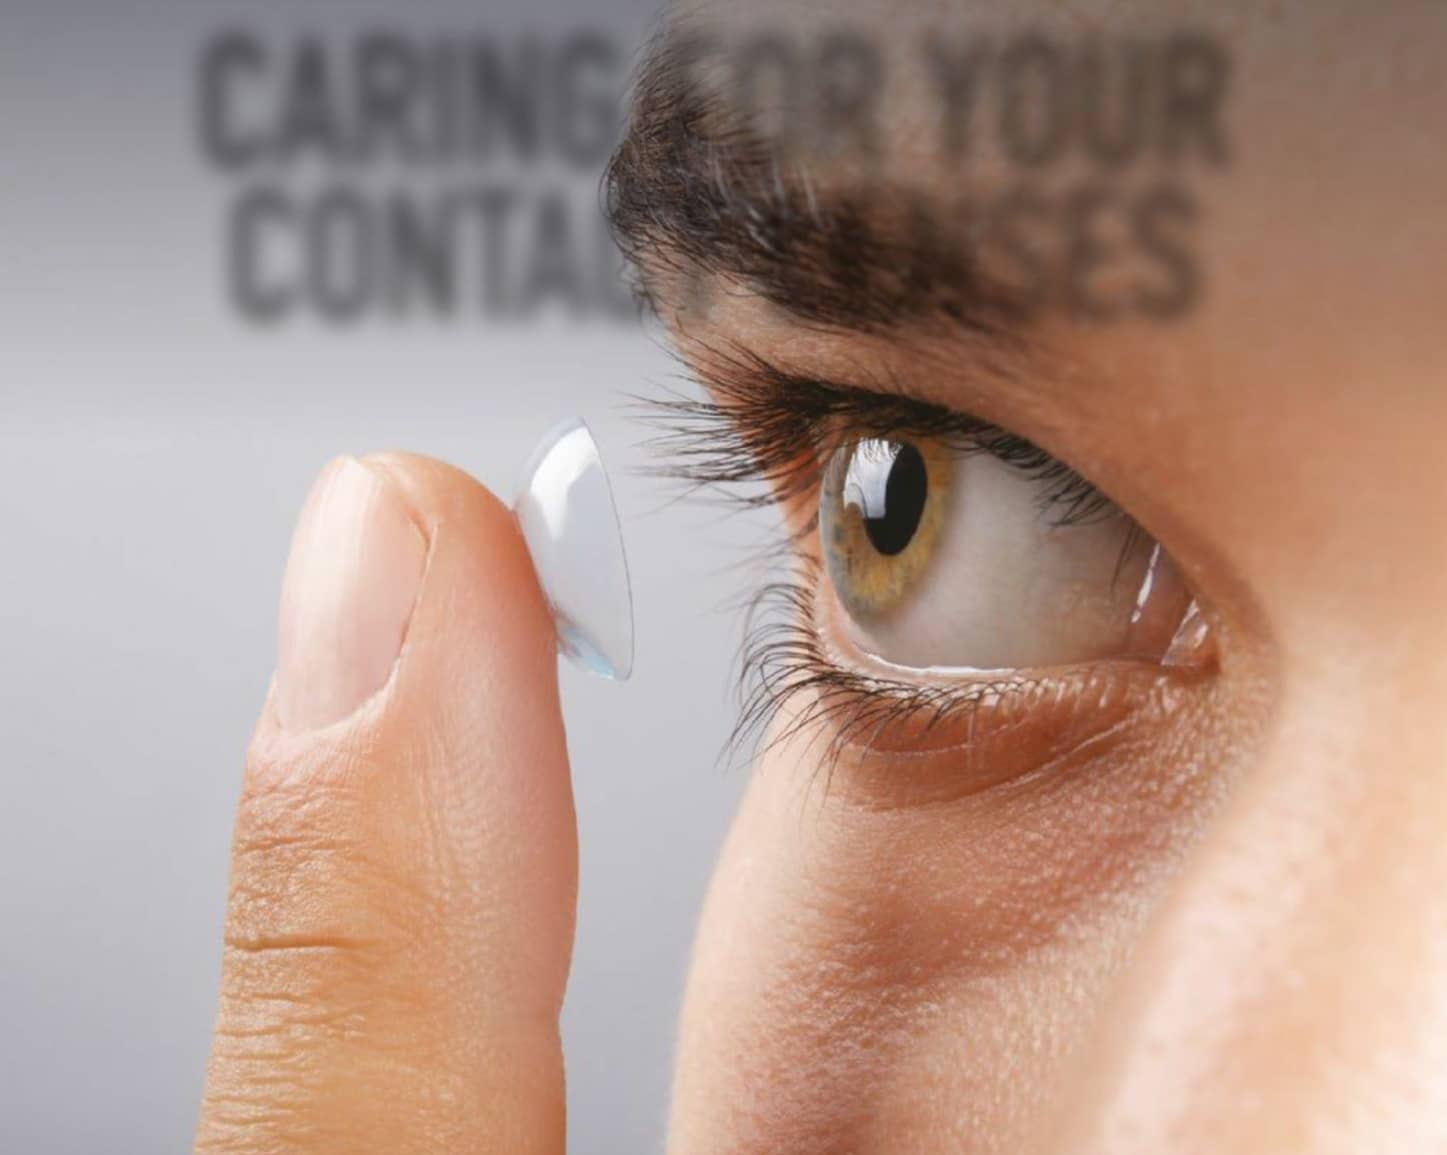 Caring For Your Contact Lenses